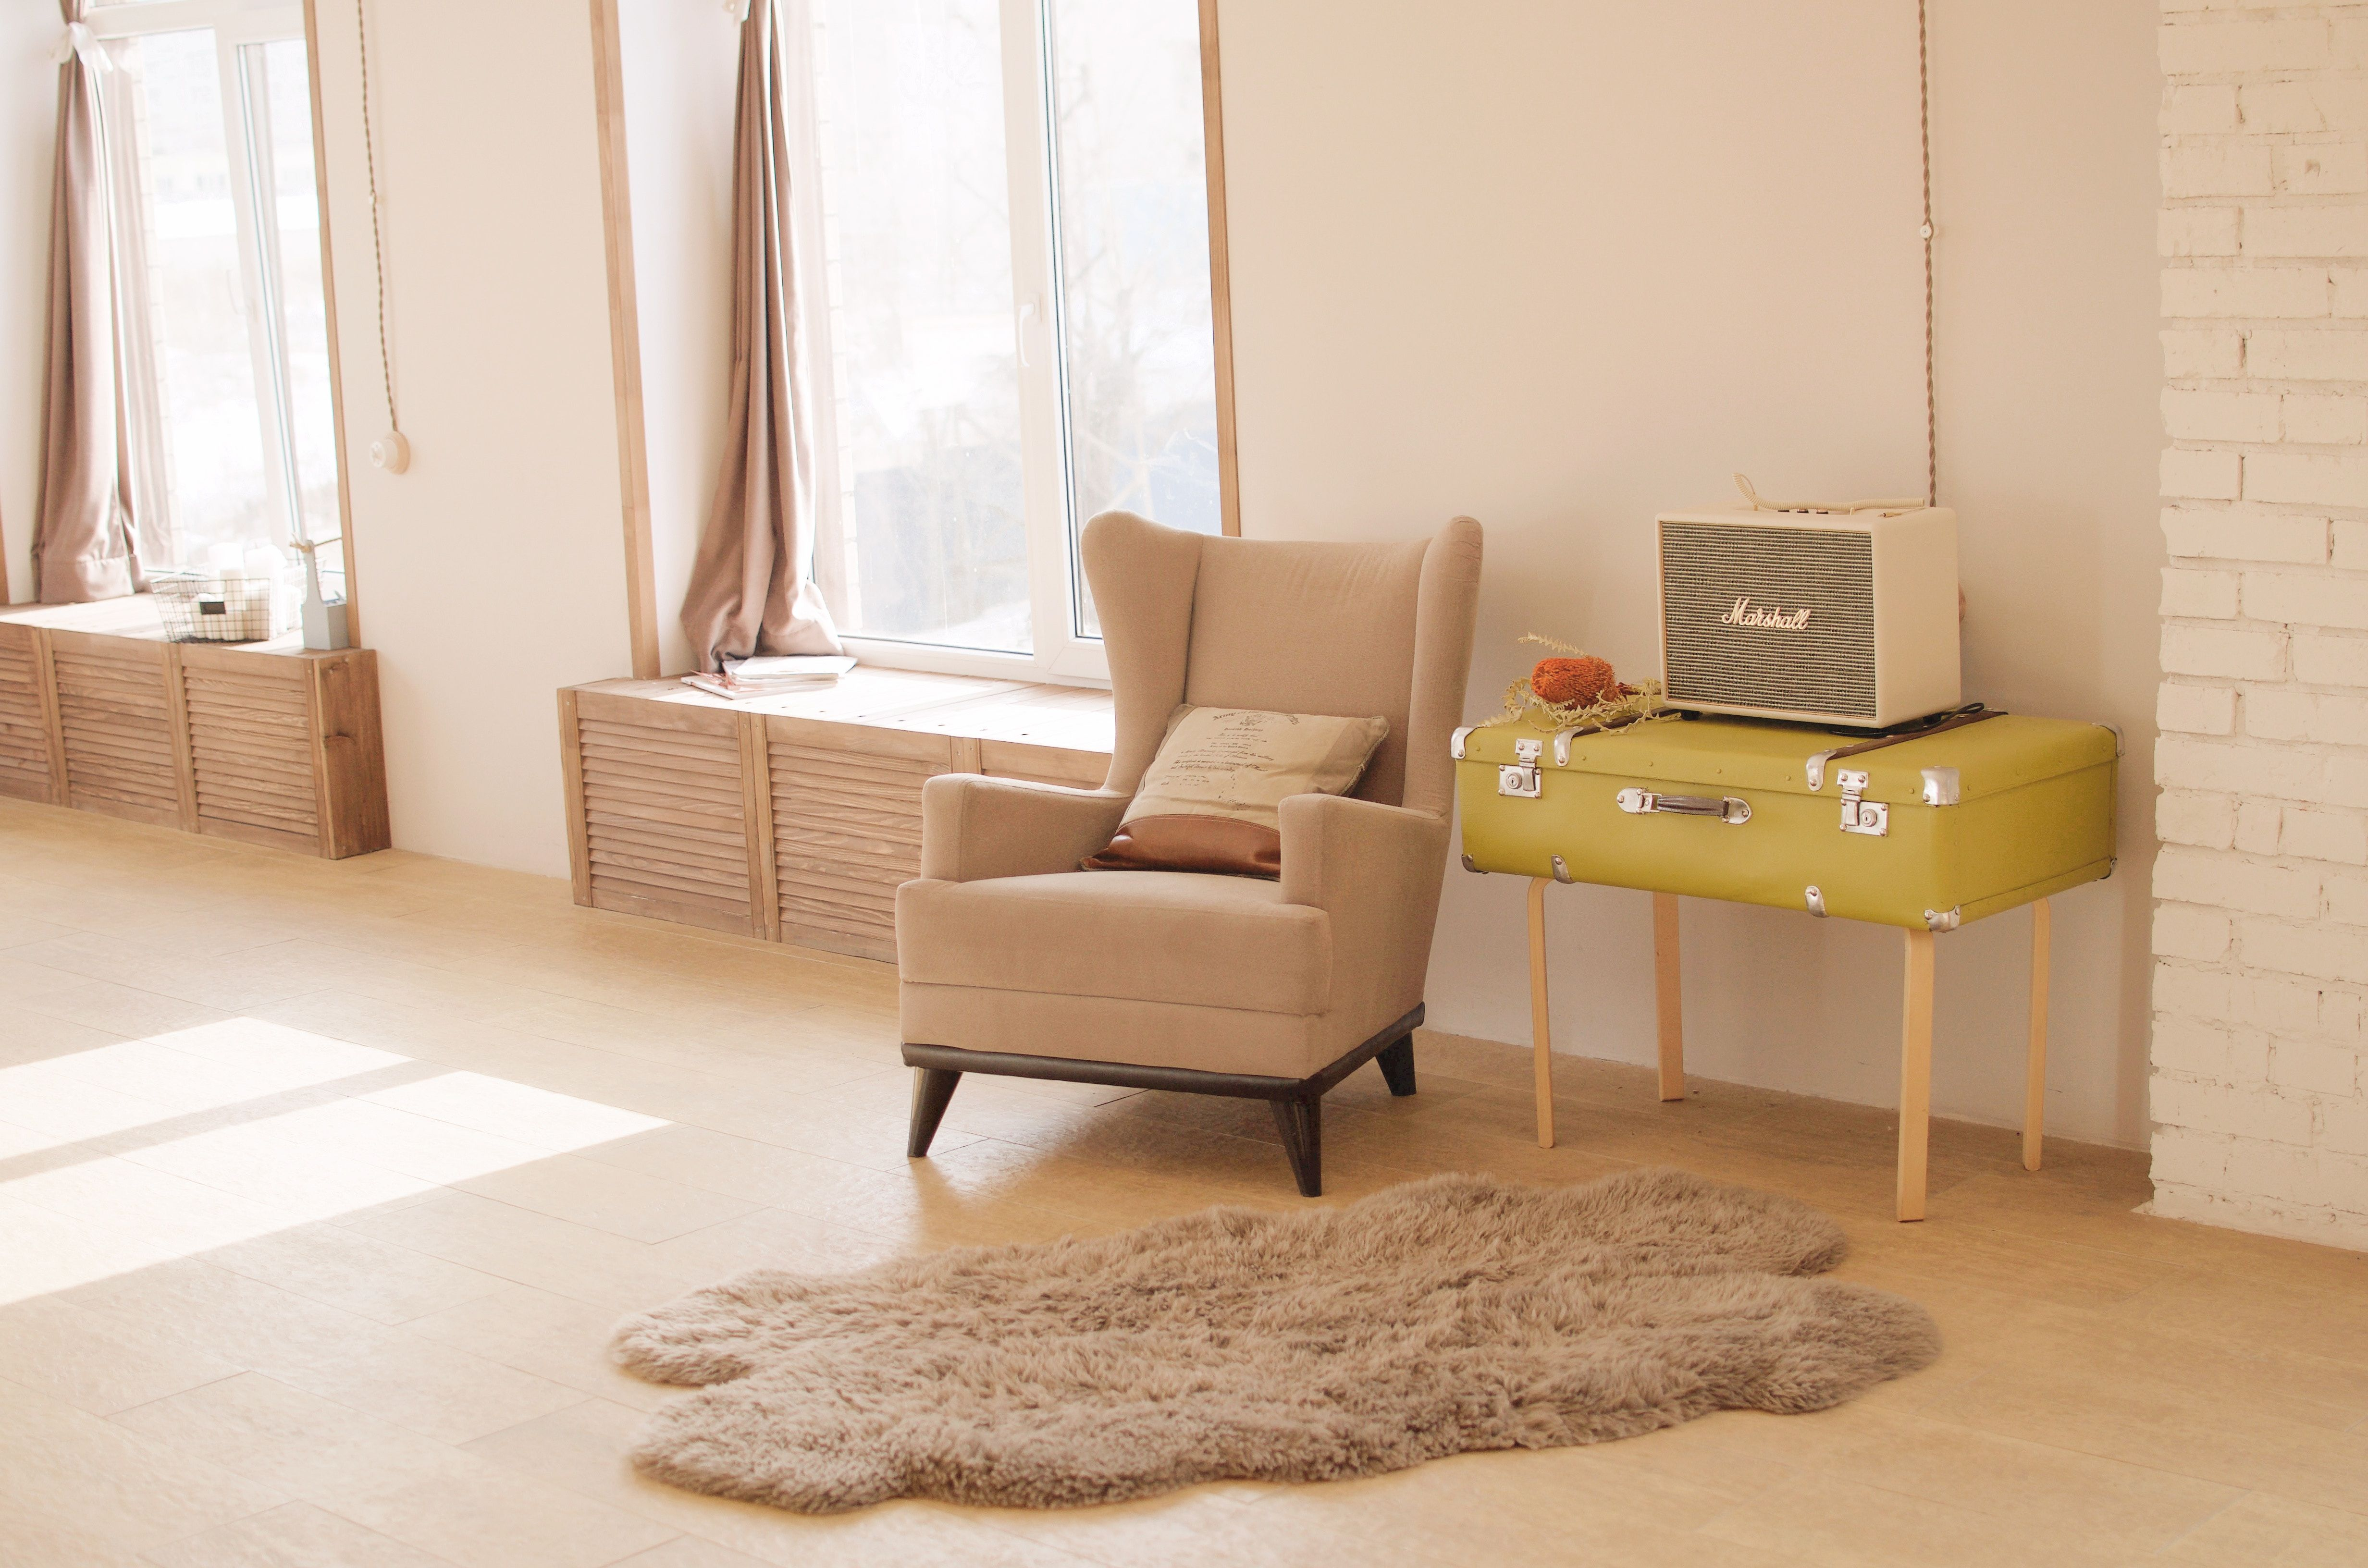 A Neutral Pelt And Pop Of Yellow Bring The Focus